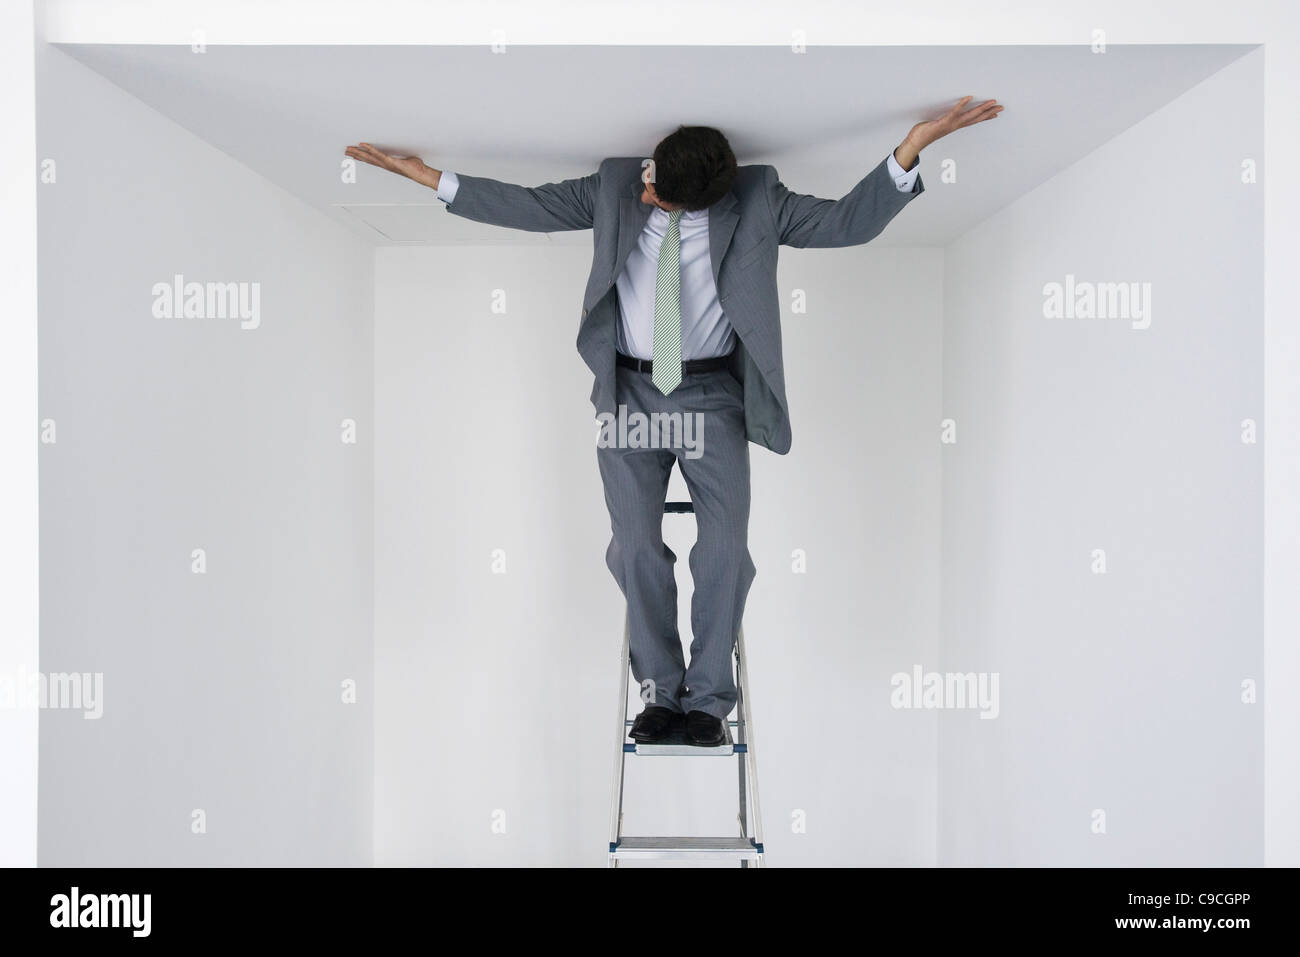 Executive standing on stepladder, arms outstretched on ceiling Stock Photo